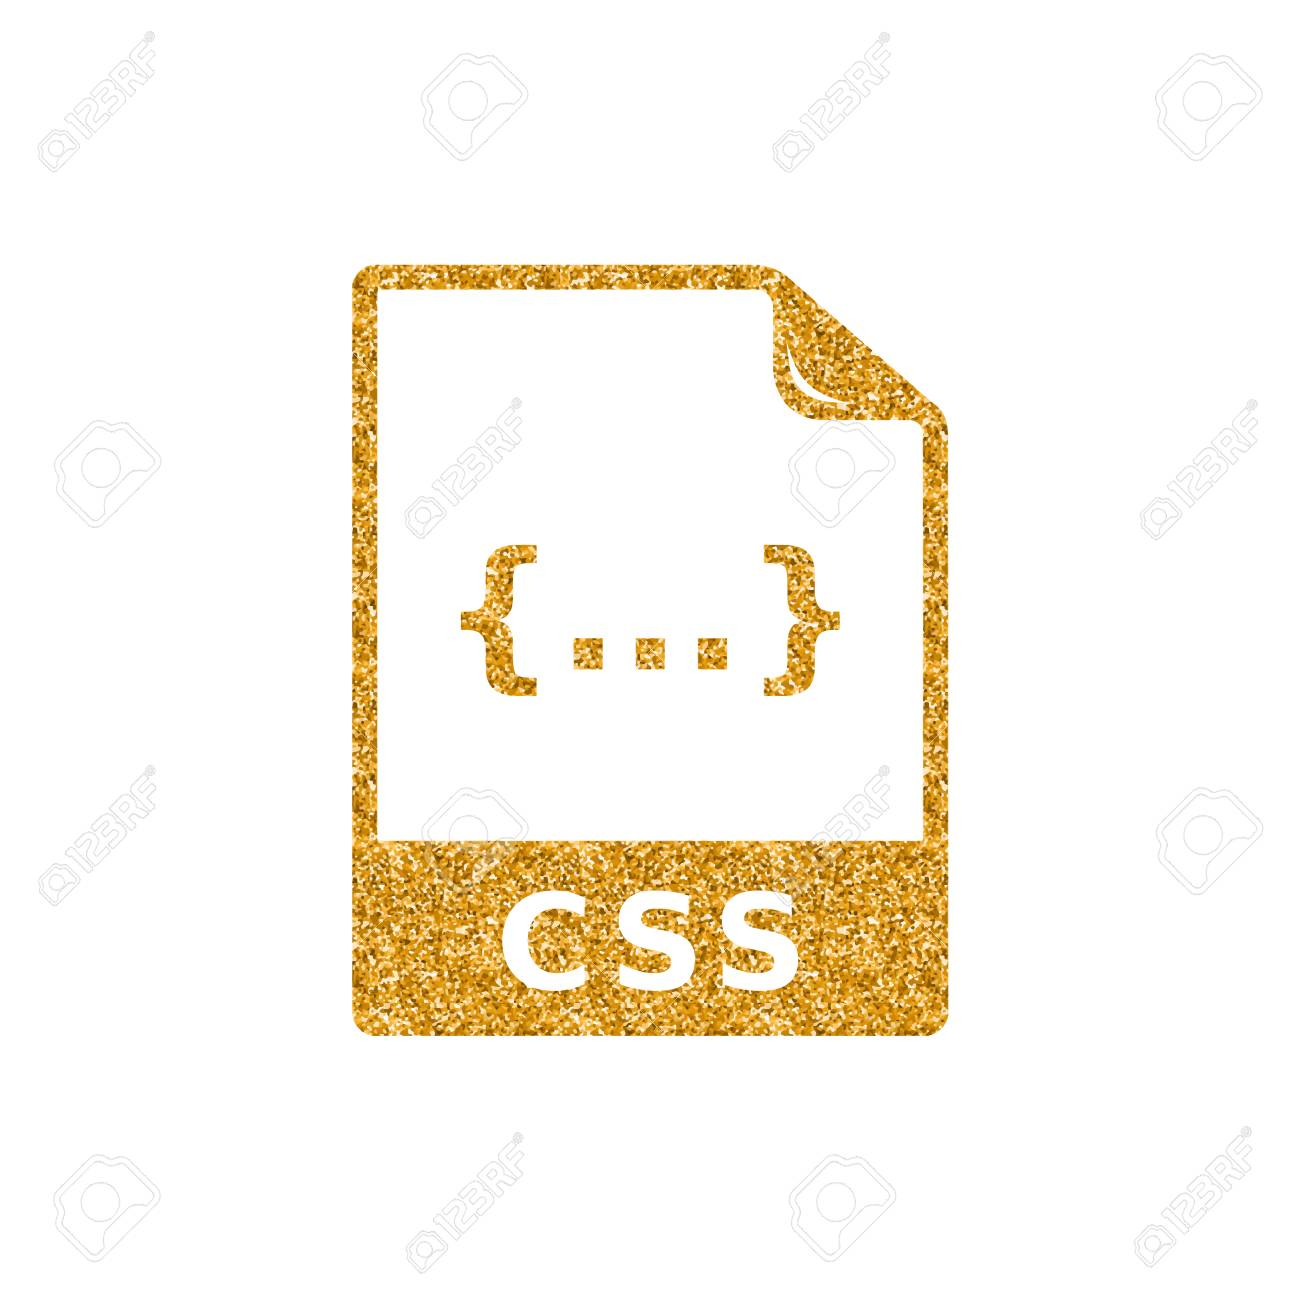 CSS file format icon in gold glitter texture  Sparkle luxury